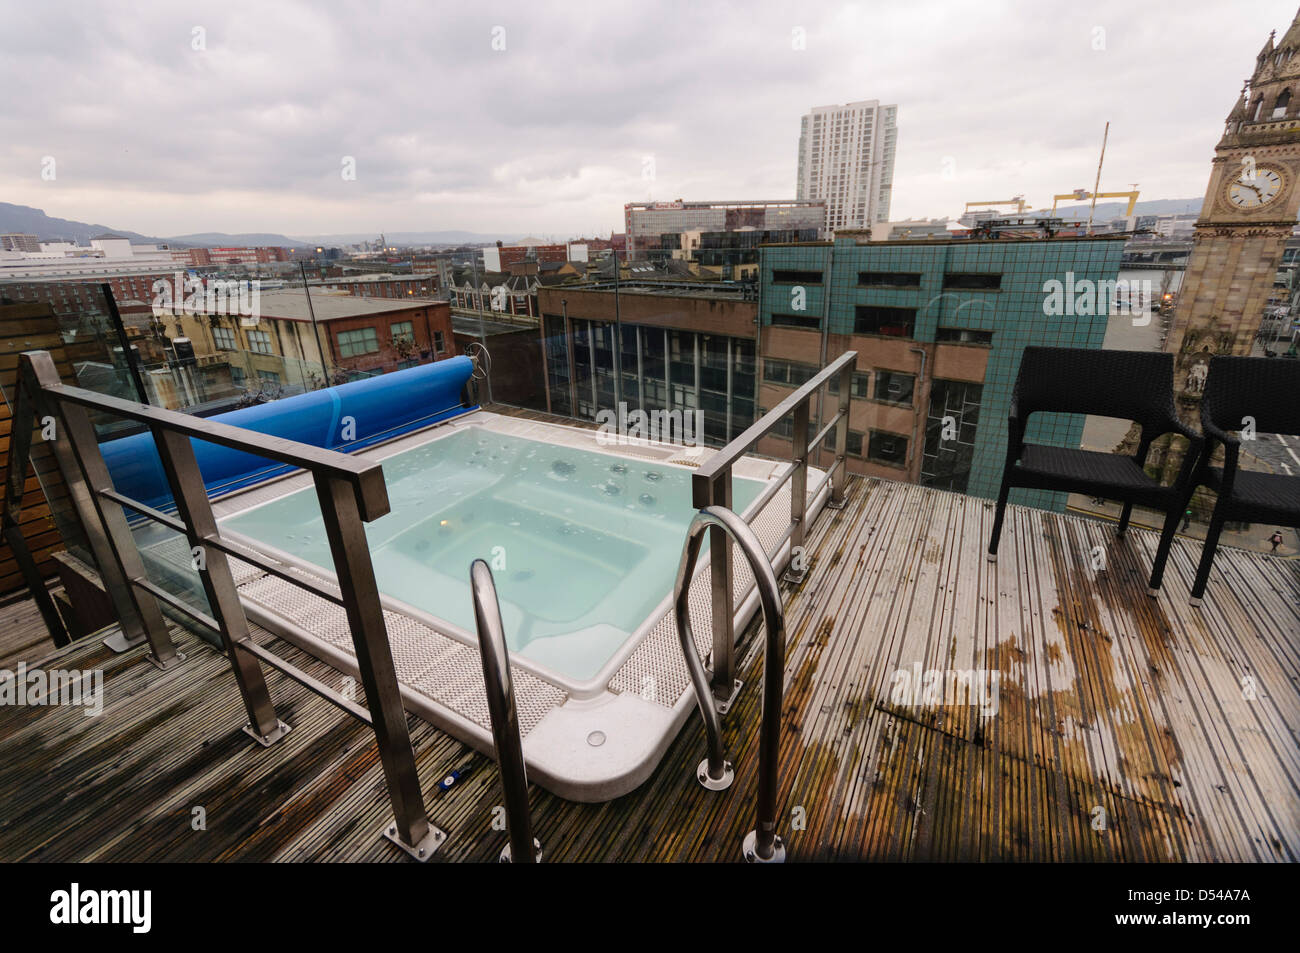 The rooftop jacuzzi at the Merchant Hotel, overlooking Belfast City. - Stock Image